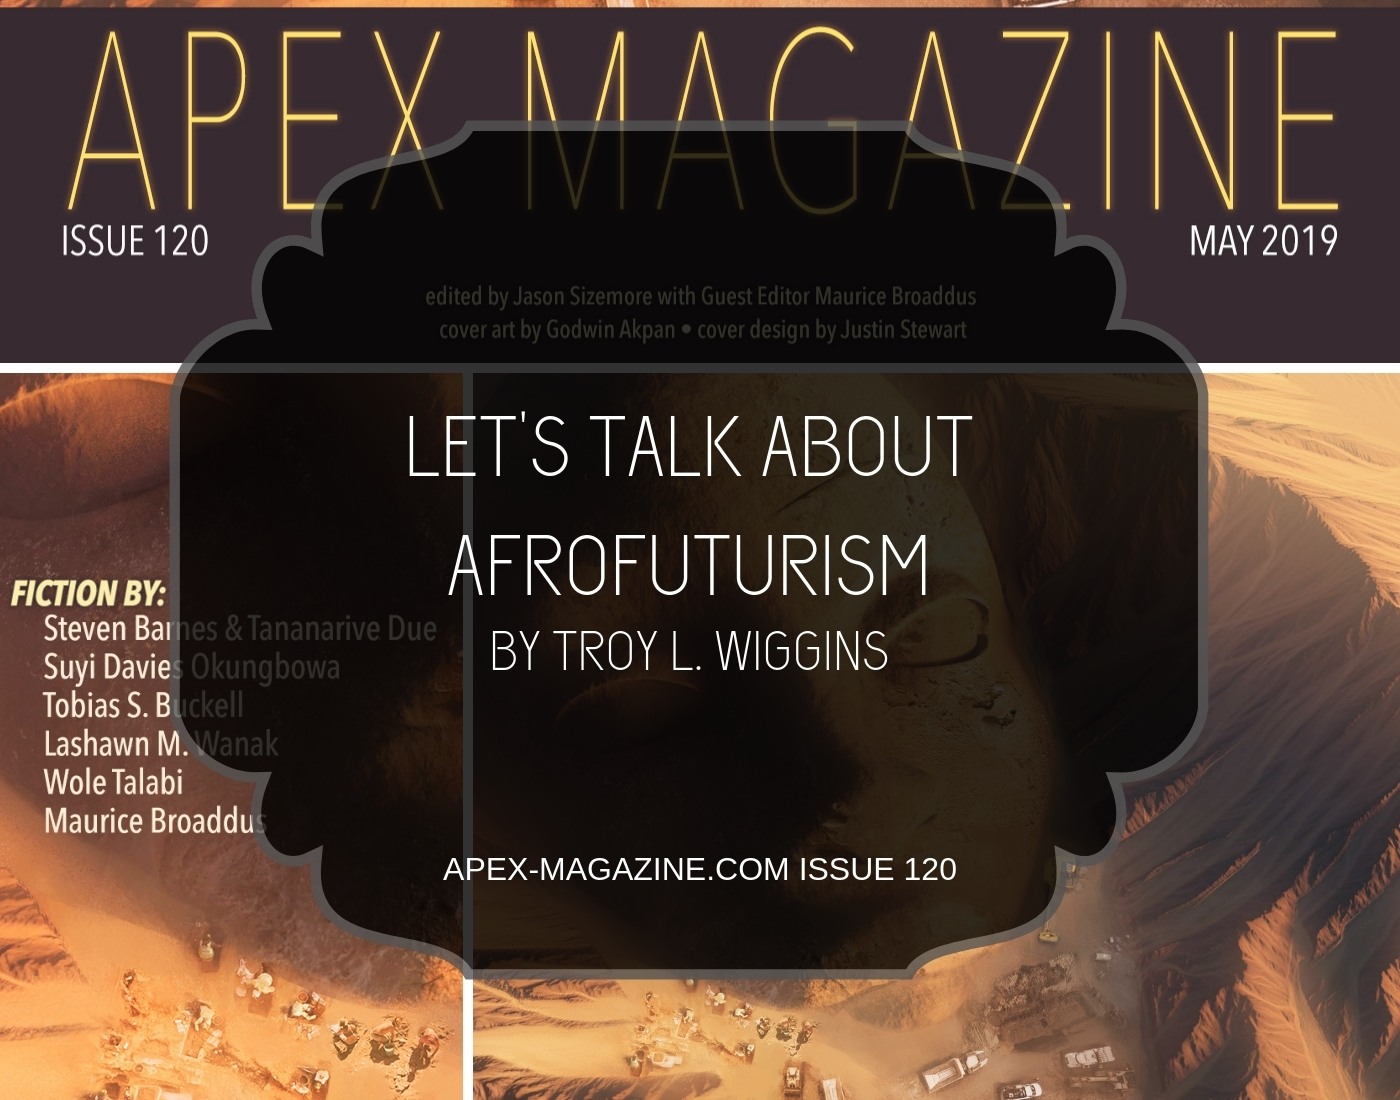 Let's Talk About Afrofuturism